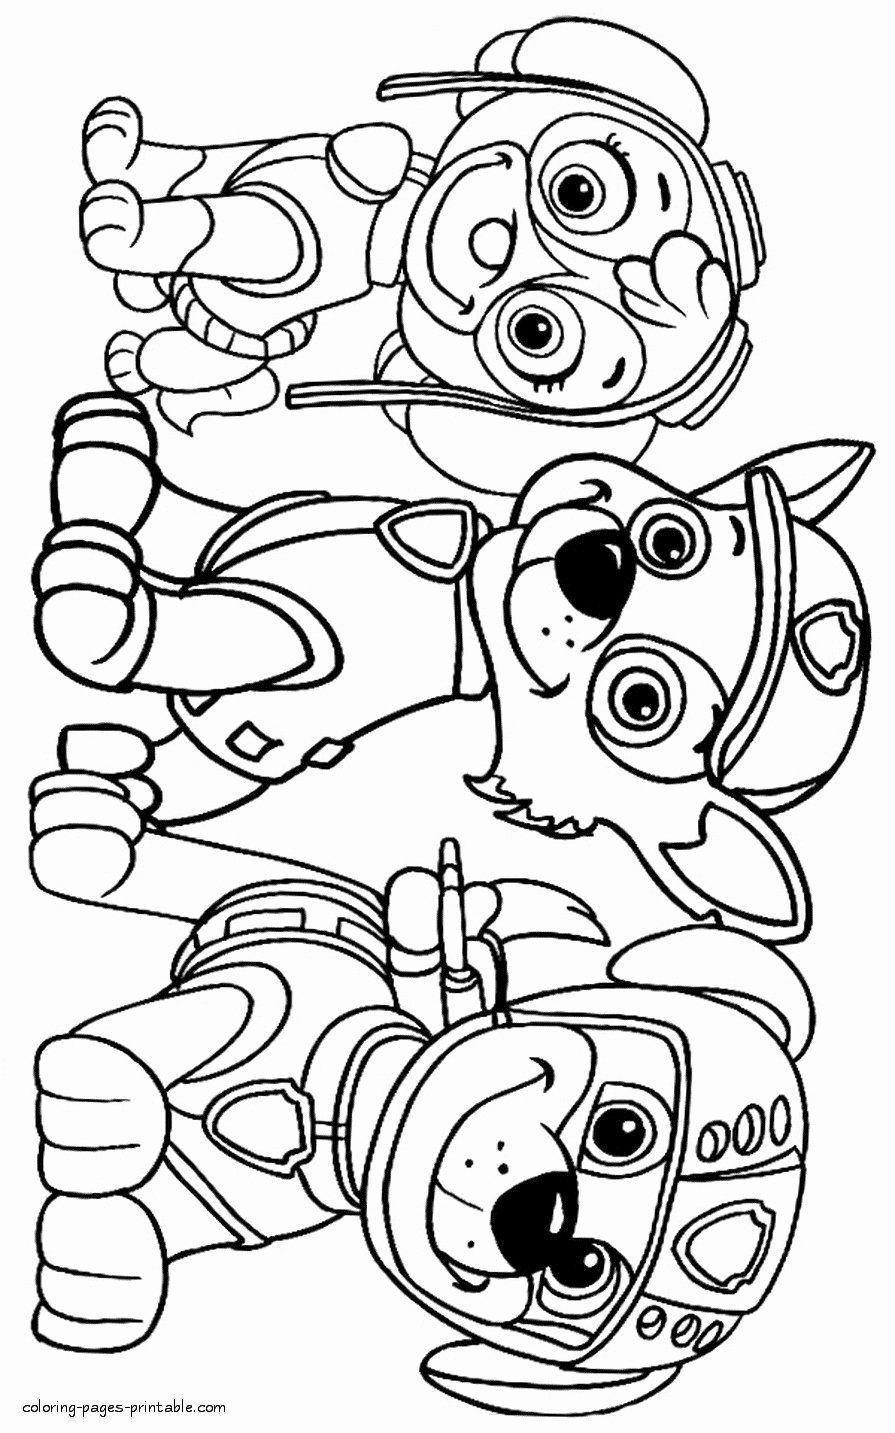 A Dog And Happy Birthday Present Coloring Page : Color Luna ... | 1433x895